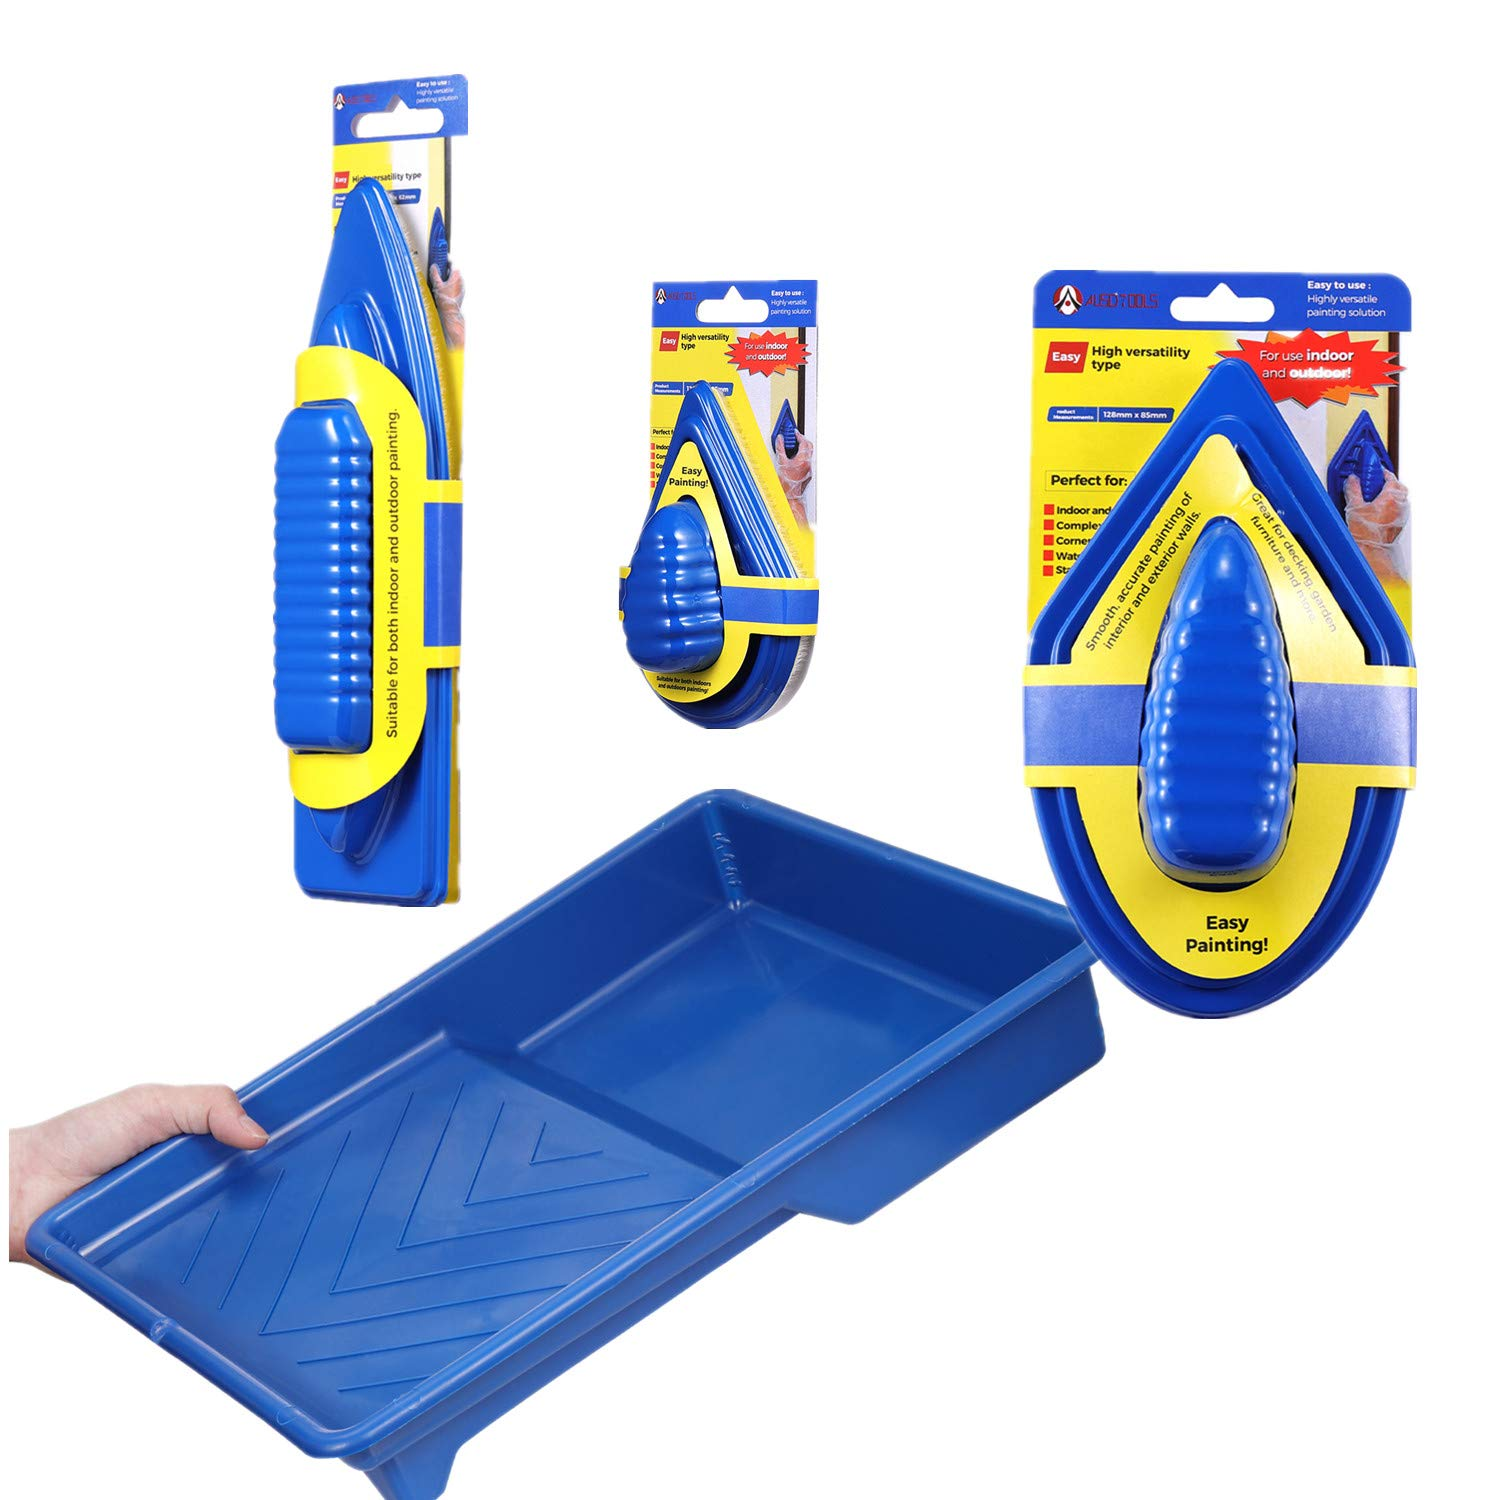 YUKAKI The Best Paint Pad Set with 9 Inch Painting Tray No Smudges No Drips Paint Edger Painting More Accurate Than Paint Roller and Paint Brush House Paint Kit by YUKAKI